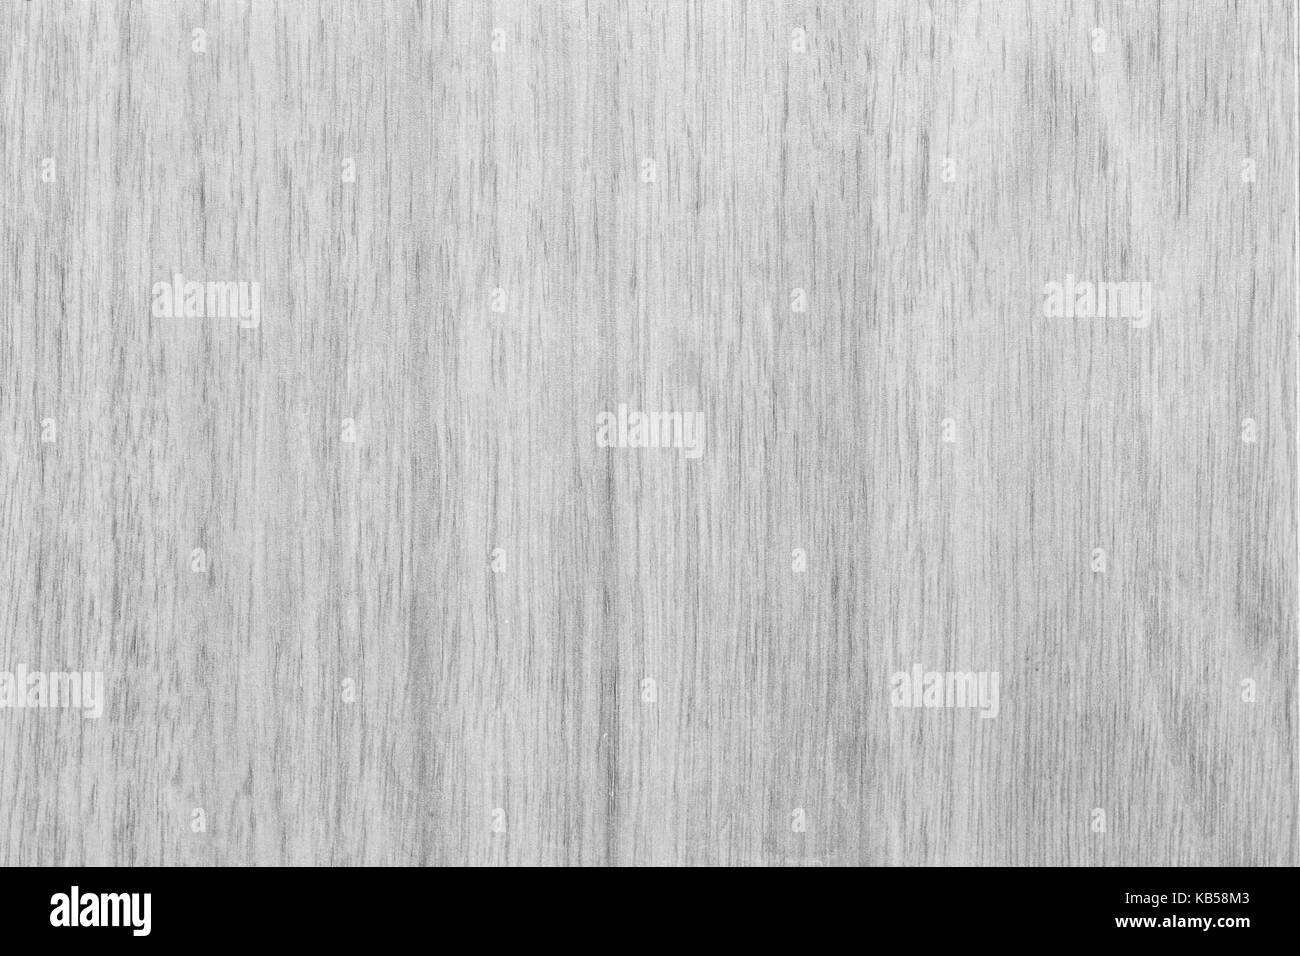 Abstract rustic surface white wood table texture background  Close up of  rustic wall made of white wood table planks texture  Rustic white wood table. Abstract rustic surface white wood table texture background  Close